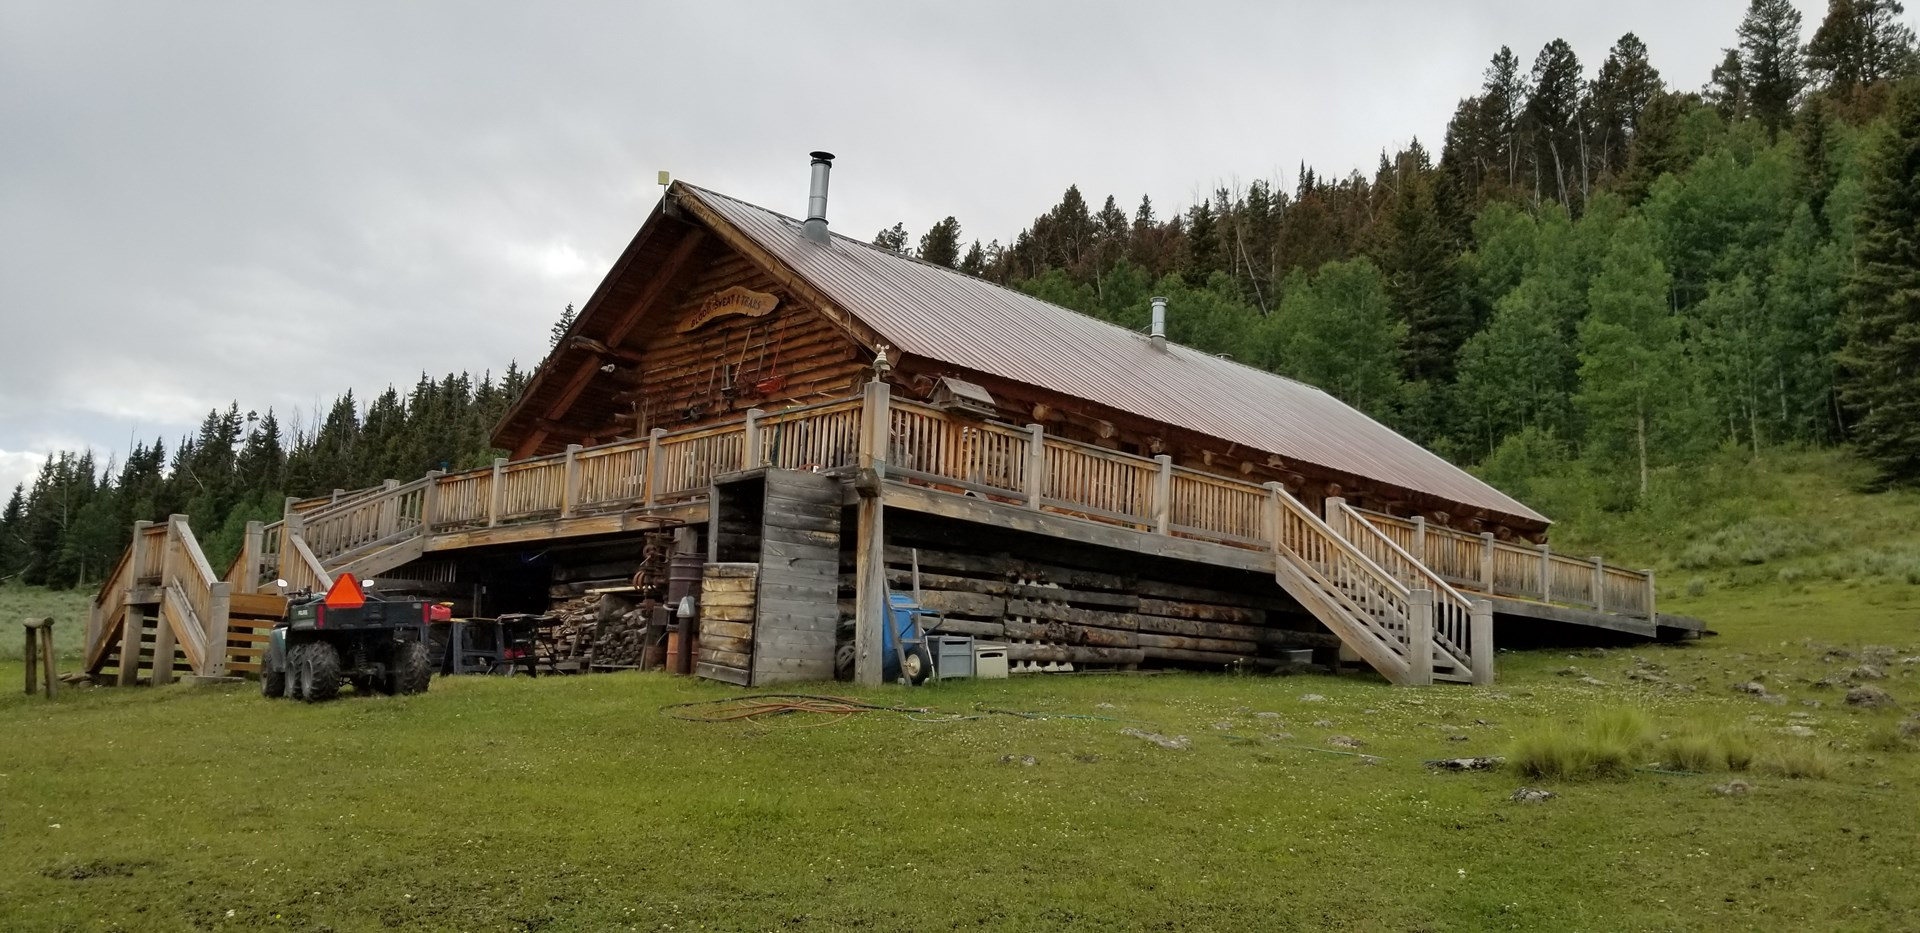 Fantastic 3 Bed /2 Bath Log Cabin on 35+ Acres in Colorado